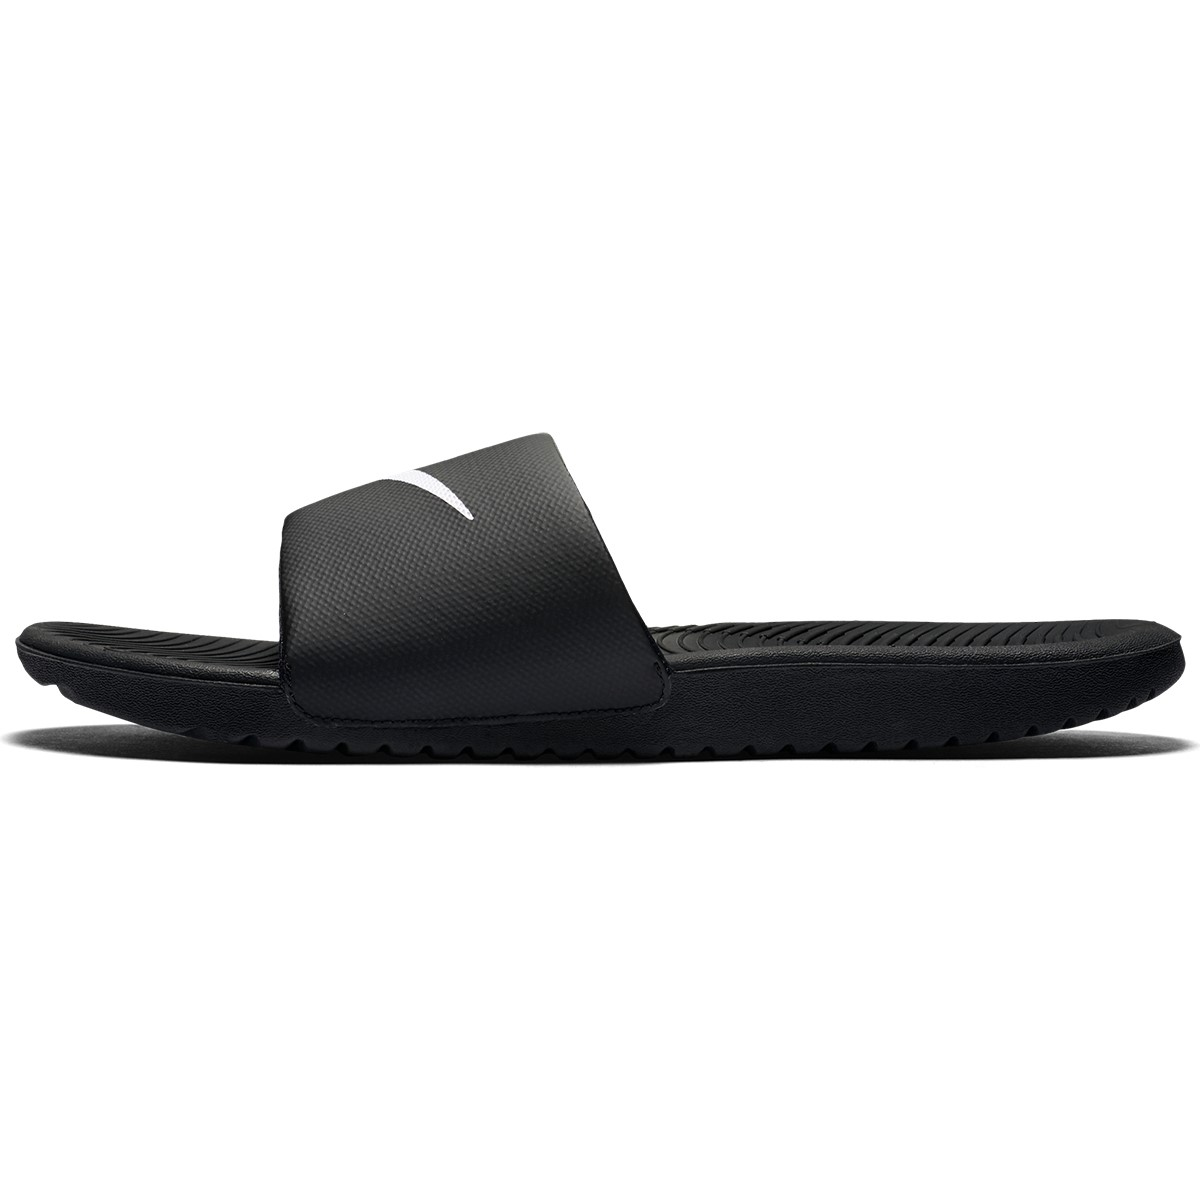 8d27922b5498 Nike Kawa Slide - Mens Slides - Black White